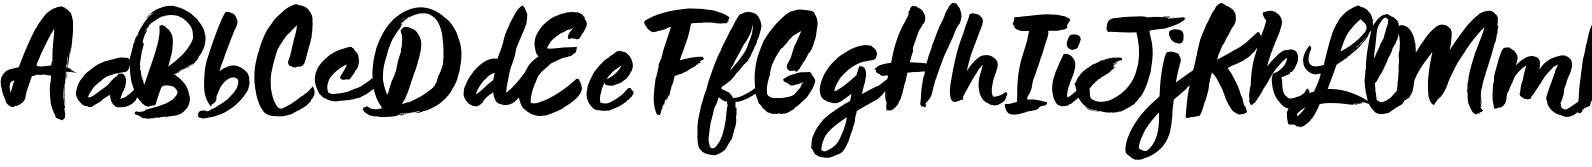 Wild Thing Font